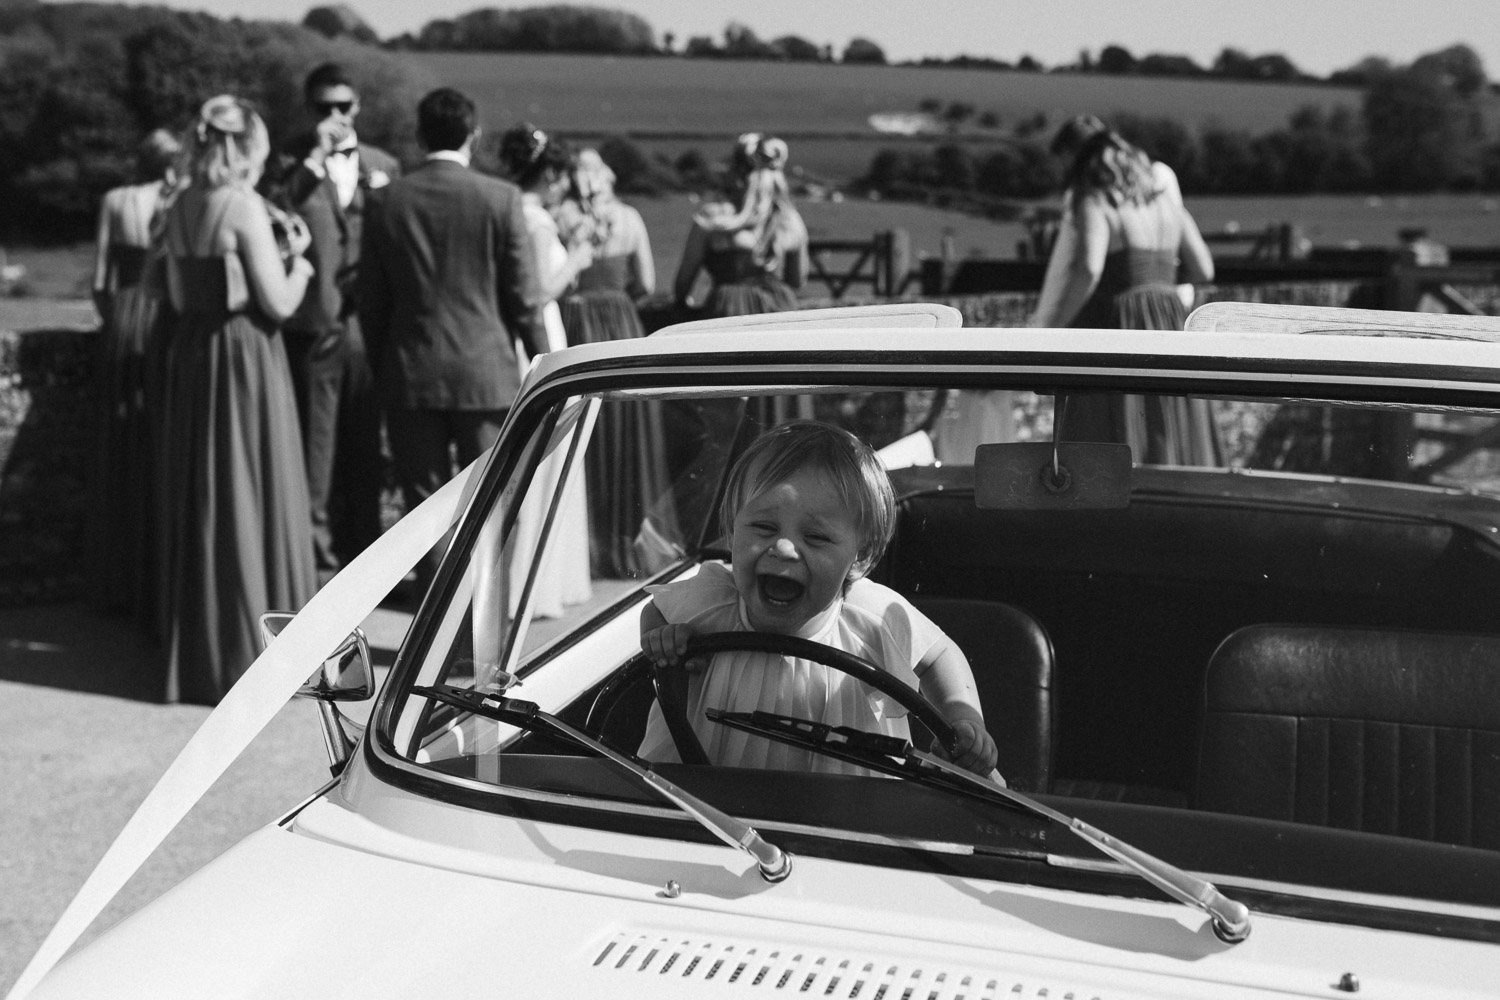 s flower girl having a moment in a vintage car